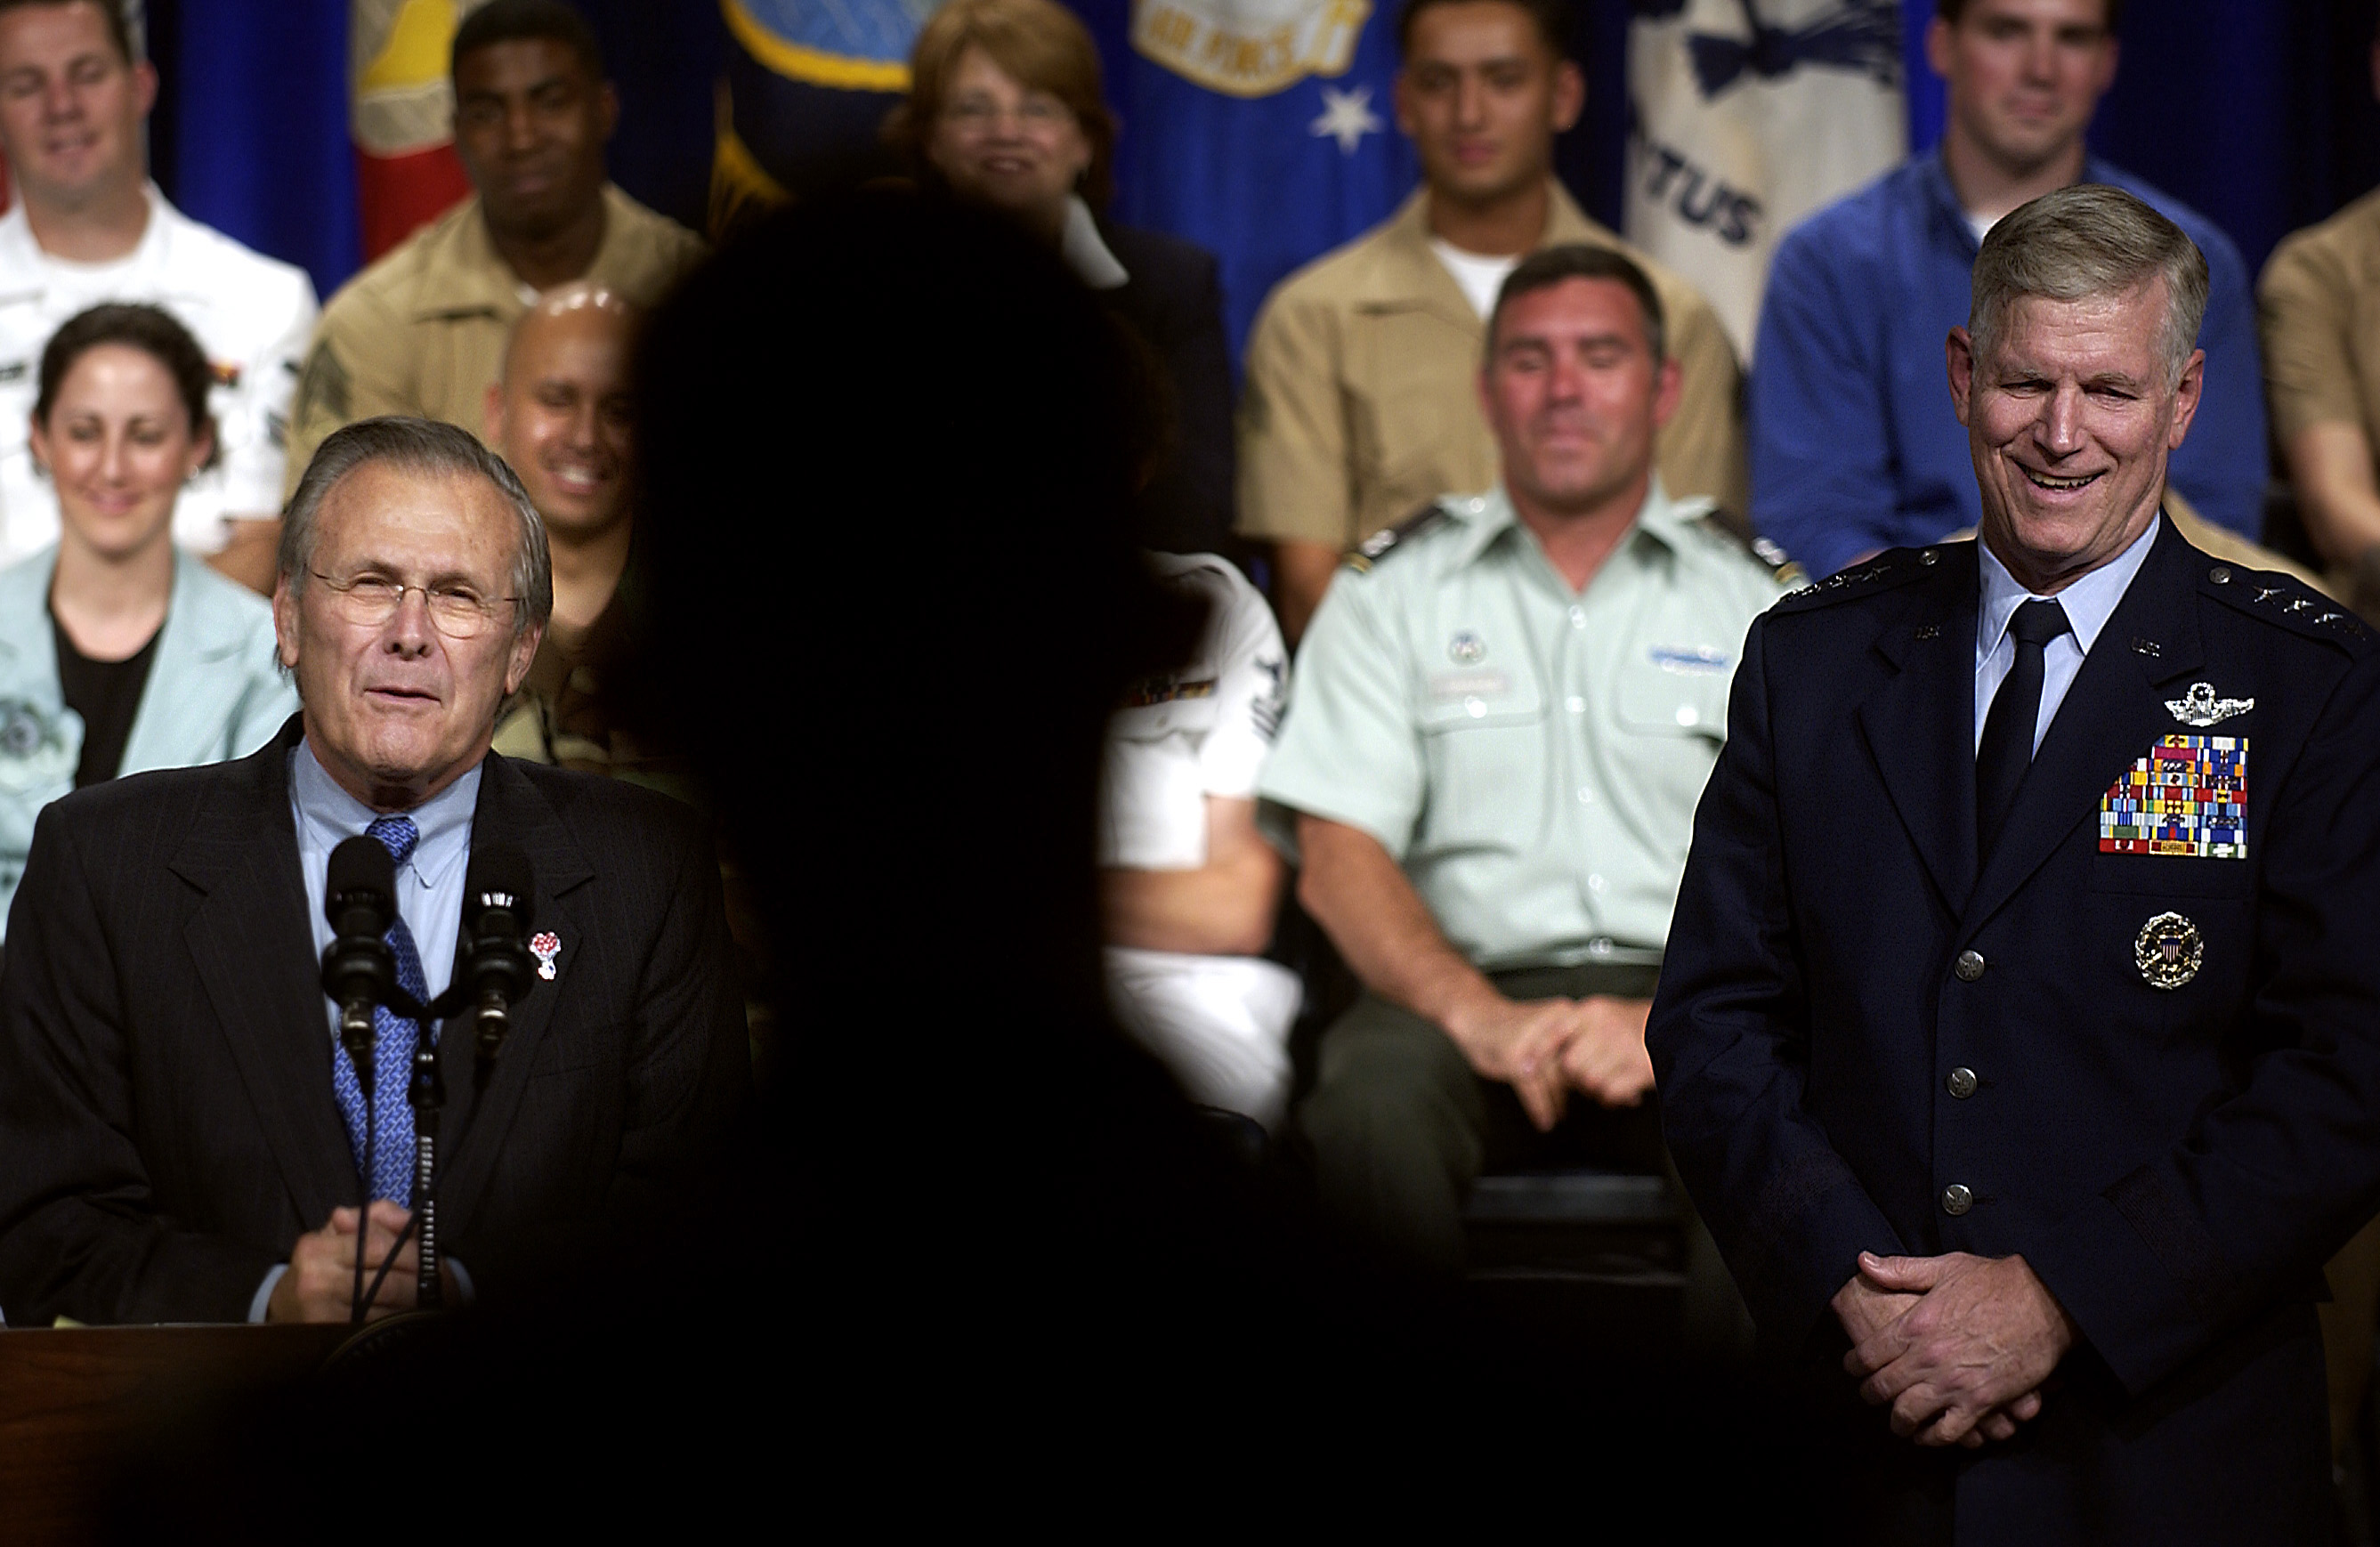 The Honorable Donald H. Rumsfeld, U.S. Secretary of Defense, addresses the audience, as U.S. Air Force GEN. Richard Myers, Chairman of the Joint Chiefs of STAFF, listens, during a worldwide Town Hall meeting at the Pentagon, Washington, D.C., on Jun. 29, 2005. (DoD photo by STAFF SGT. Myles D. Cullen) (Released)